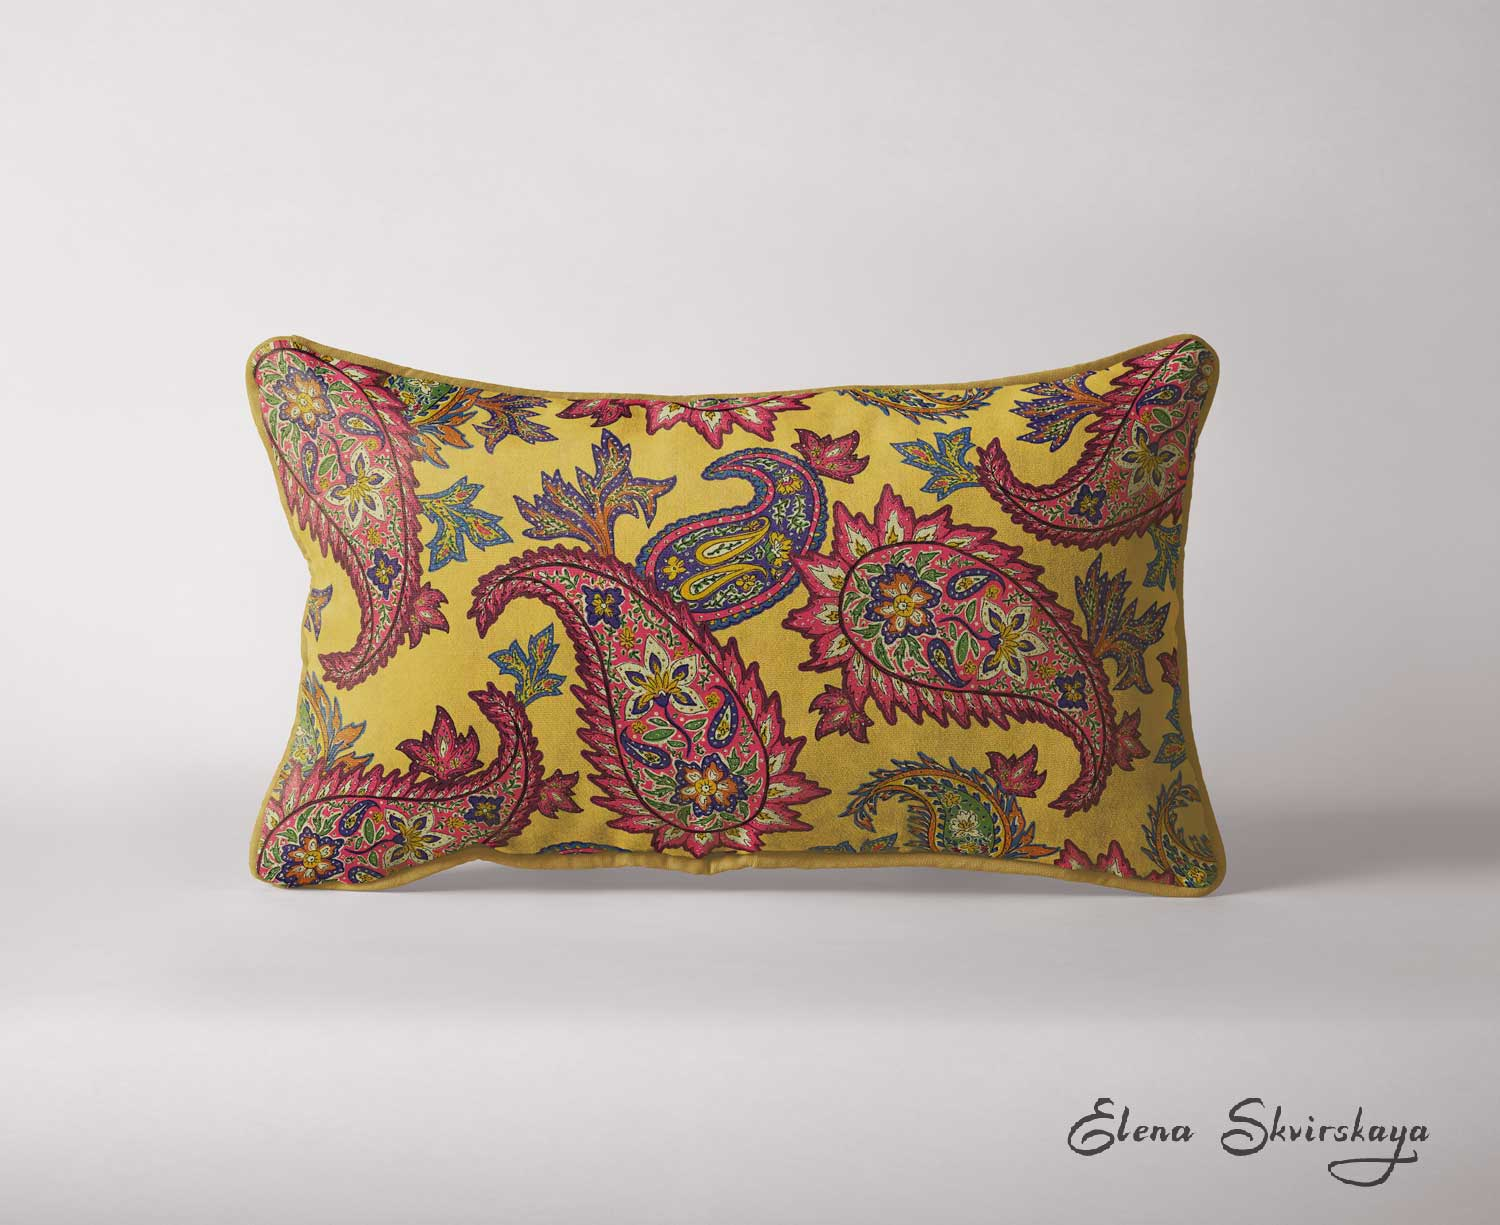 colorful paisley design on a cushion, interior decoration, home decor, mock-up